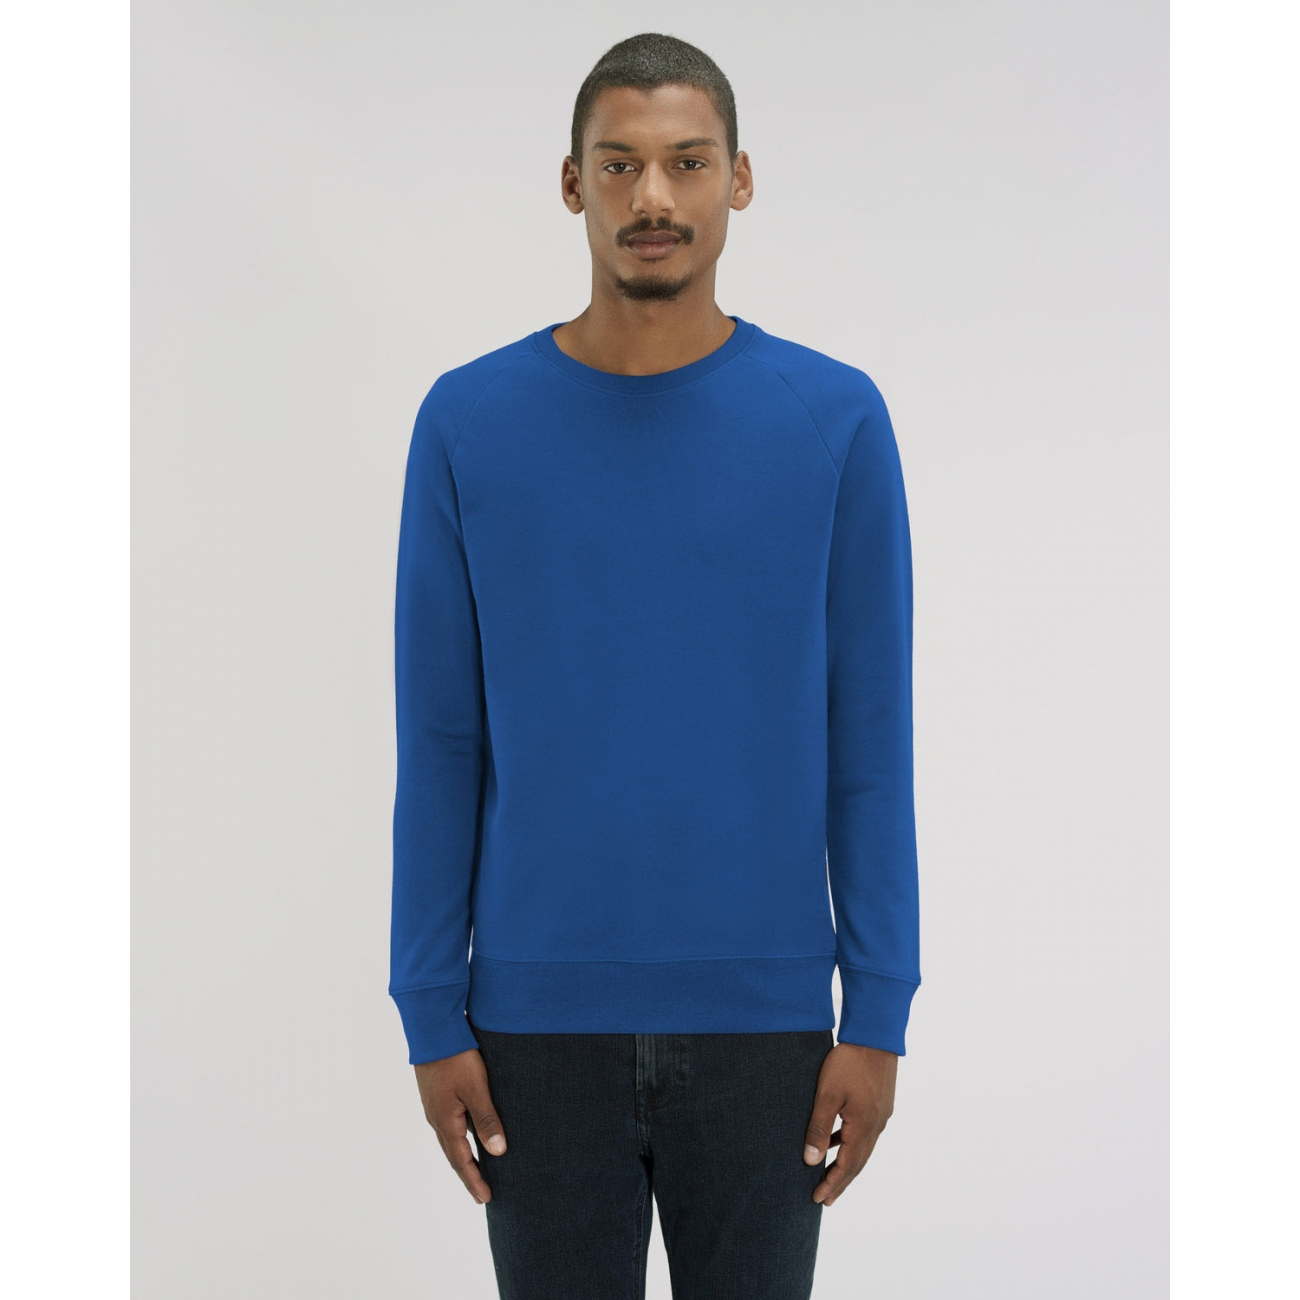 https://tee-shirt-bio.com/9147-thickbox_default/sweat-shirt-col-rond-coton-bio-homme-bleu-majorelle.jpg